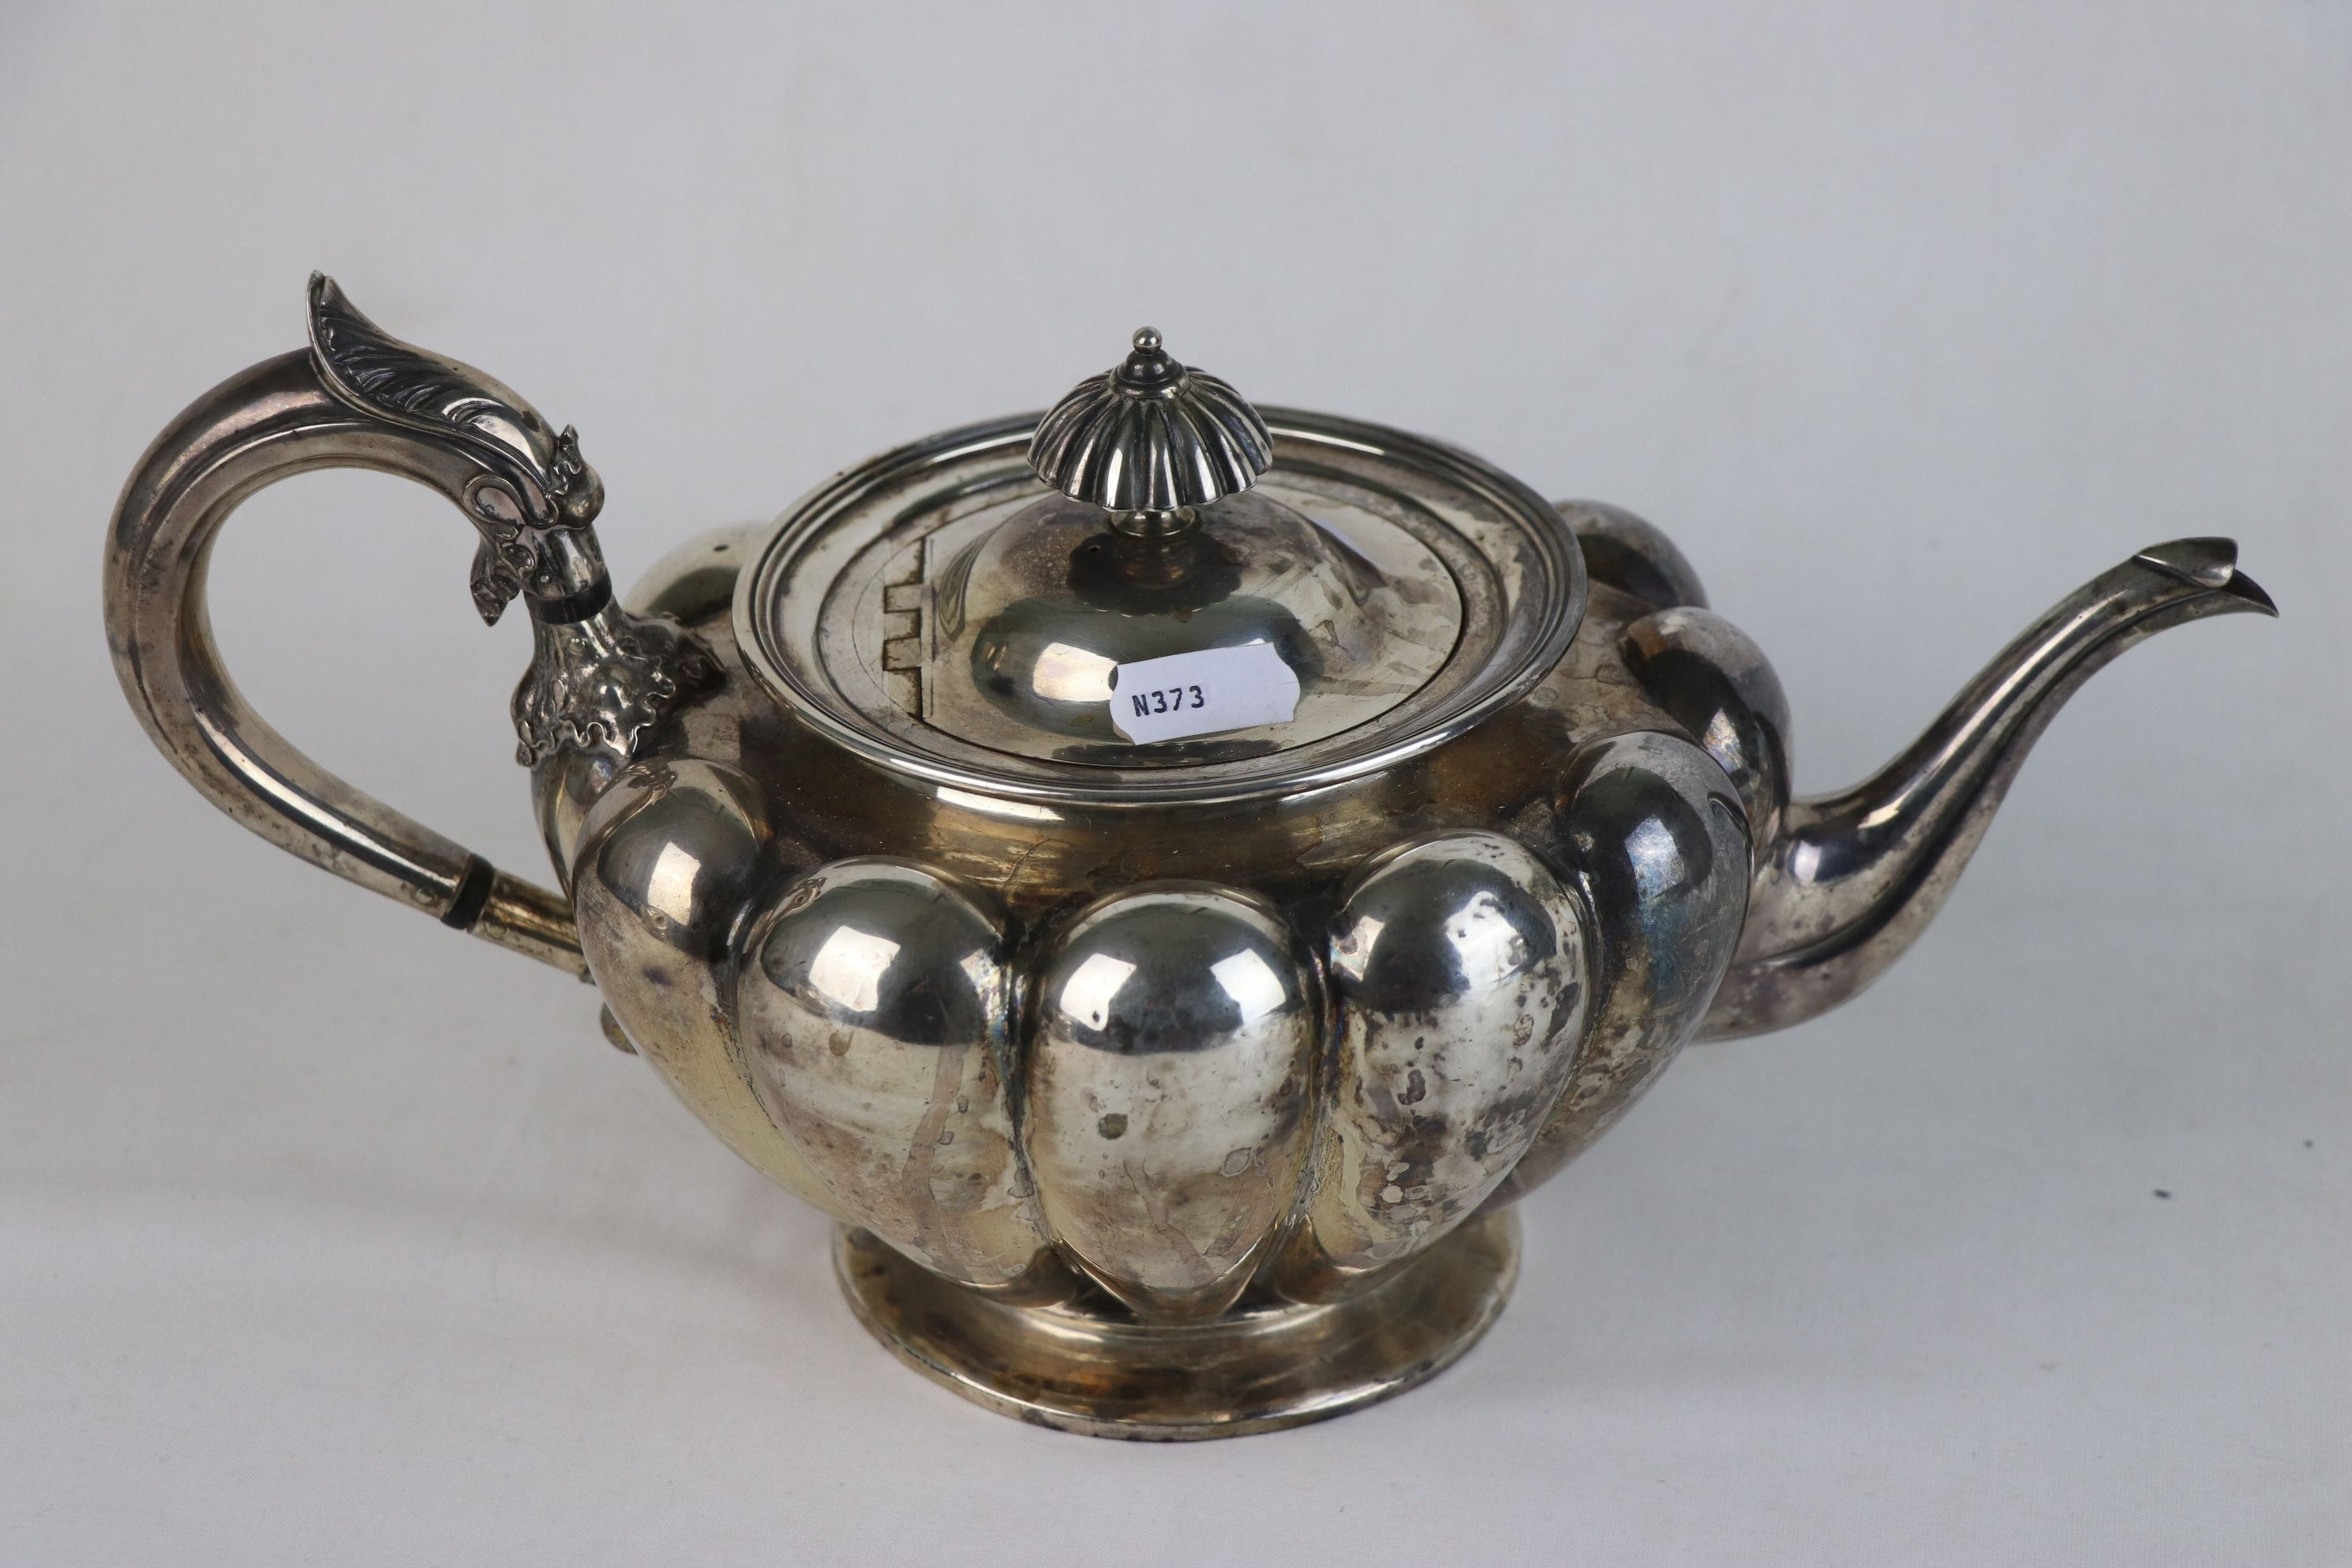 A fully hallmarked Victorian sterling silver Tea pot, maker marked for John Tapley, assayed in